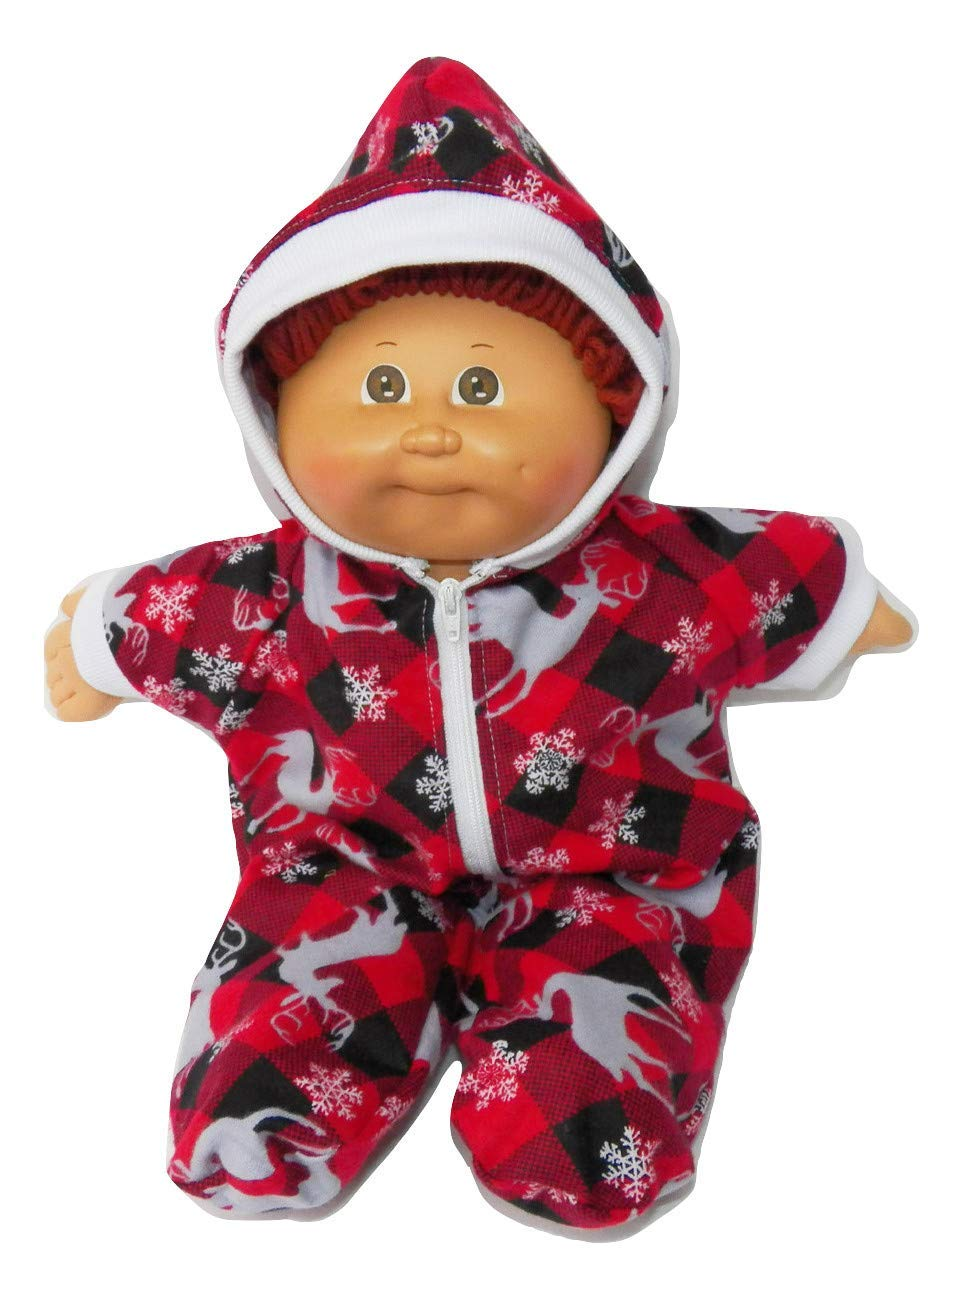 Cabbage Patch Doll Clothes Fits 14 Boy or Girl Hooded Christmas Lights Pajamas